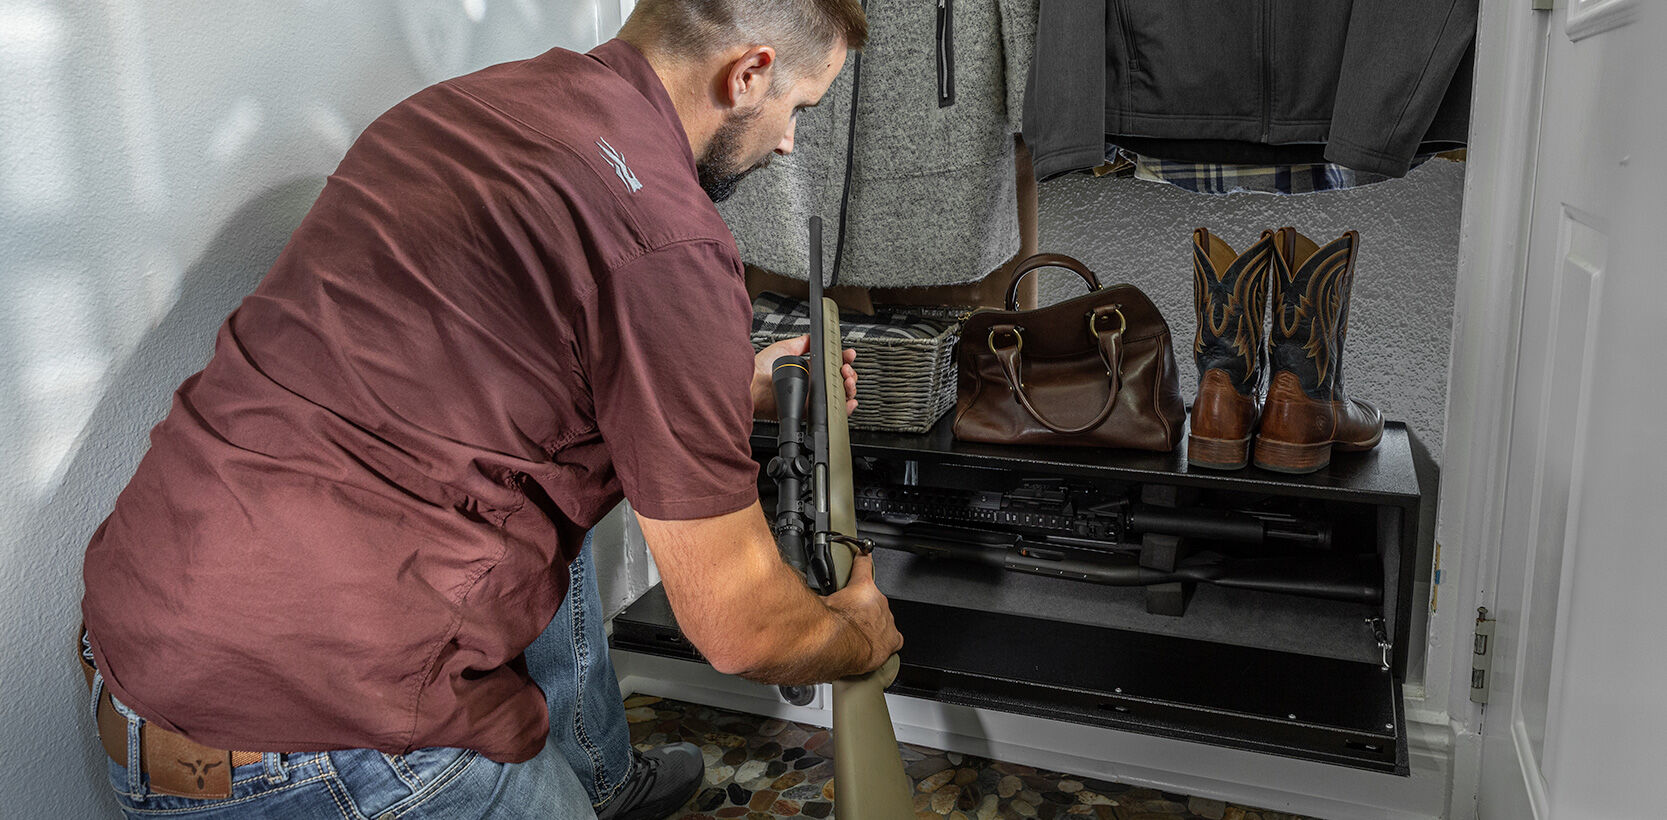 Slide number 2 Store up to threerifles in the newAR GUNLOCKER XL The fully enclosed design of our AR Gunlocker XL provides convenient, tamper-proof security for up to three tactical length rifles.  Find Out More